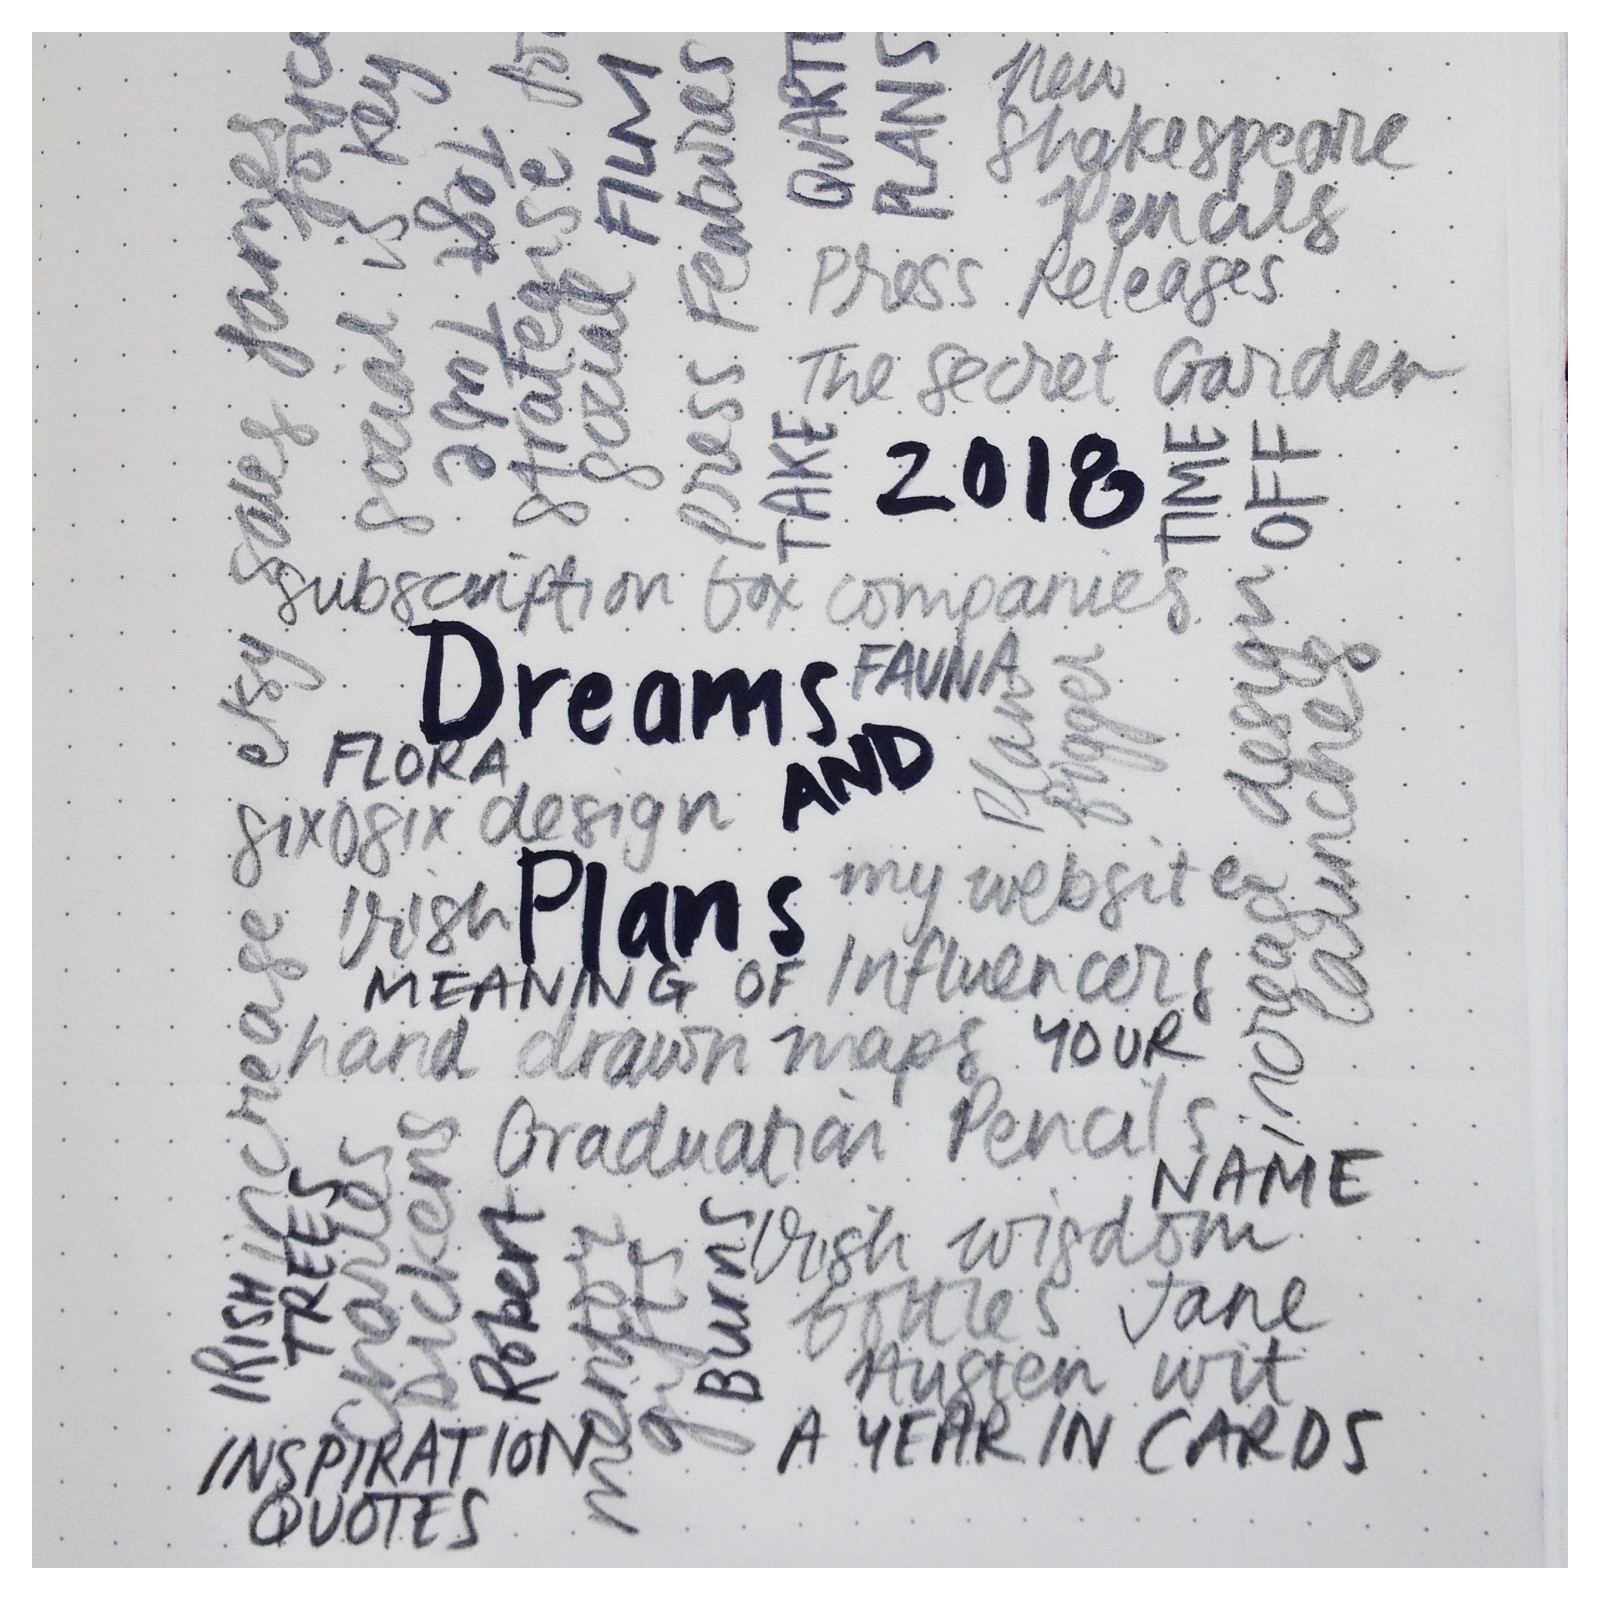 dreams plans and product ideas